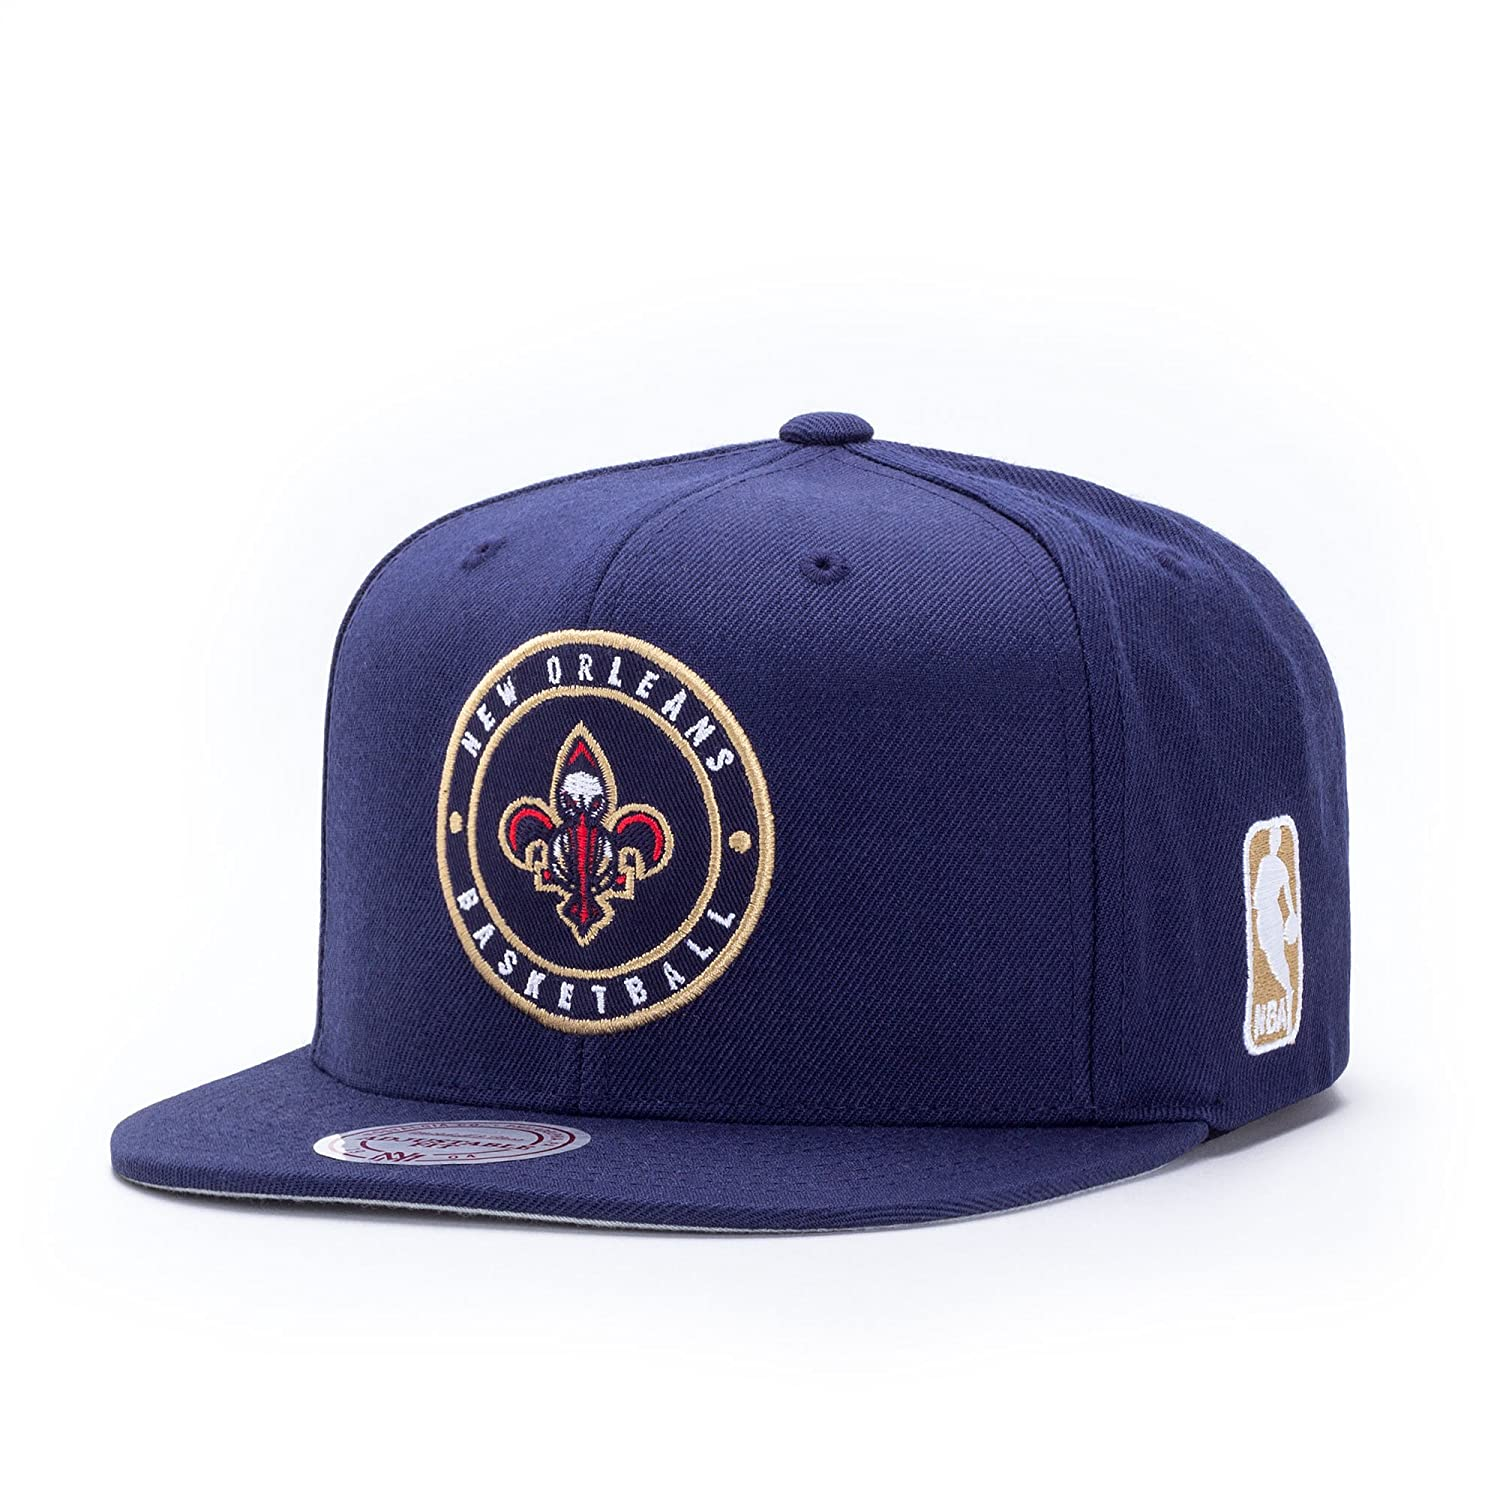 9cd89551453 Patch Pelicans Cap Mitchell   Ness cap base cap (One Size - navy)   Amazon.co.uk  Clothing